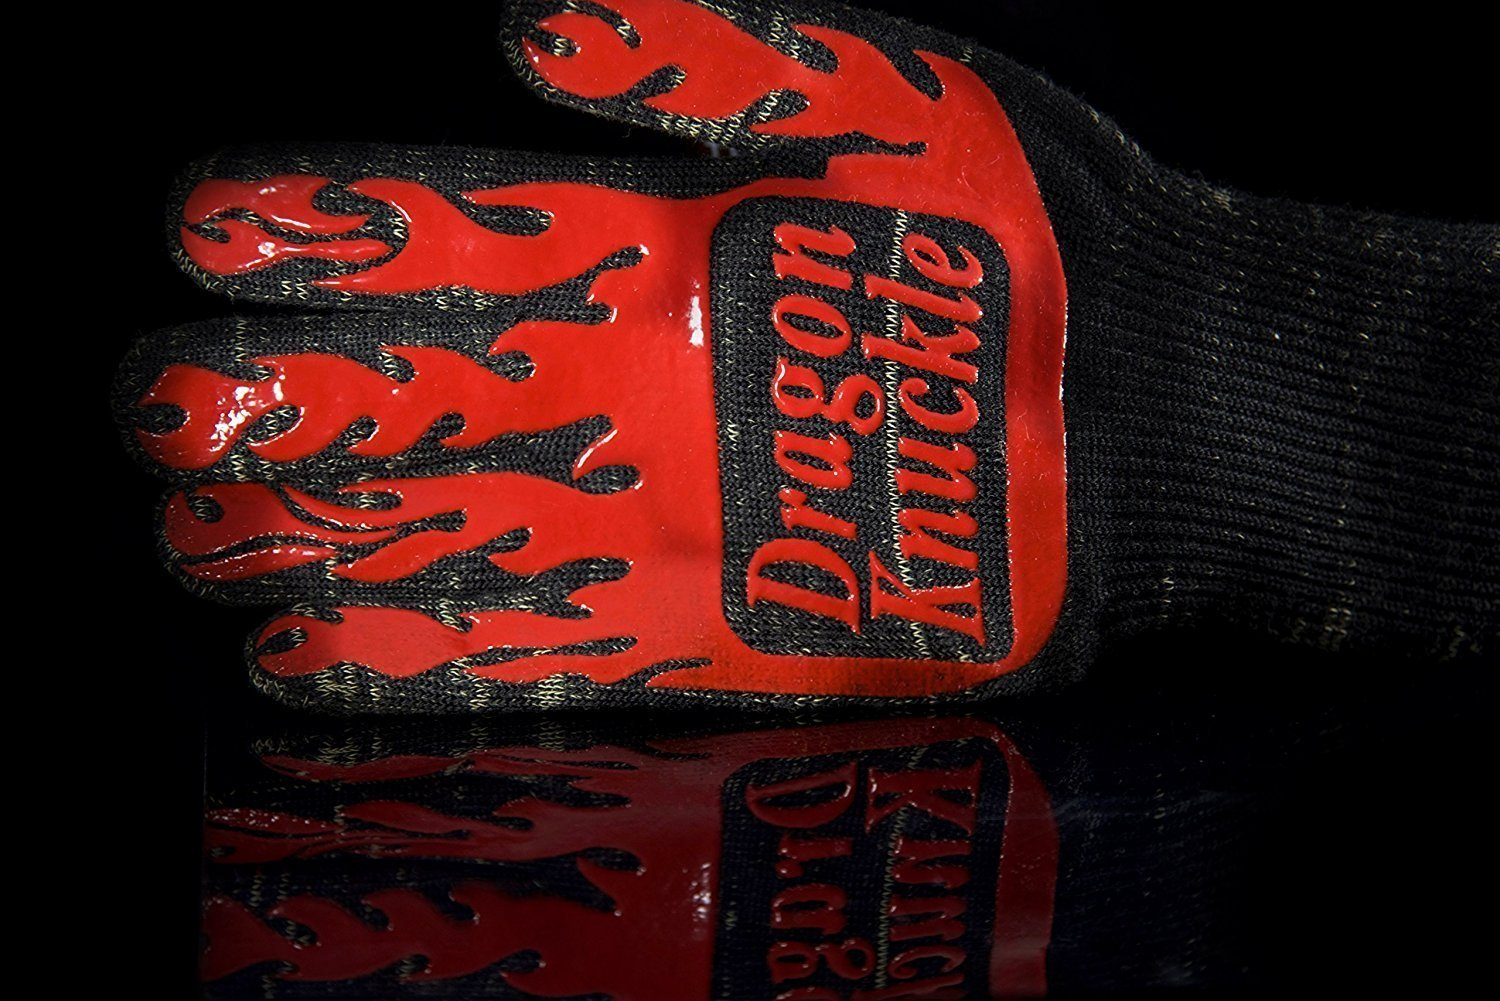 Dragon Knuckle Heat Resistant BBQ Gloves Flames Silicon Outer Liner